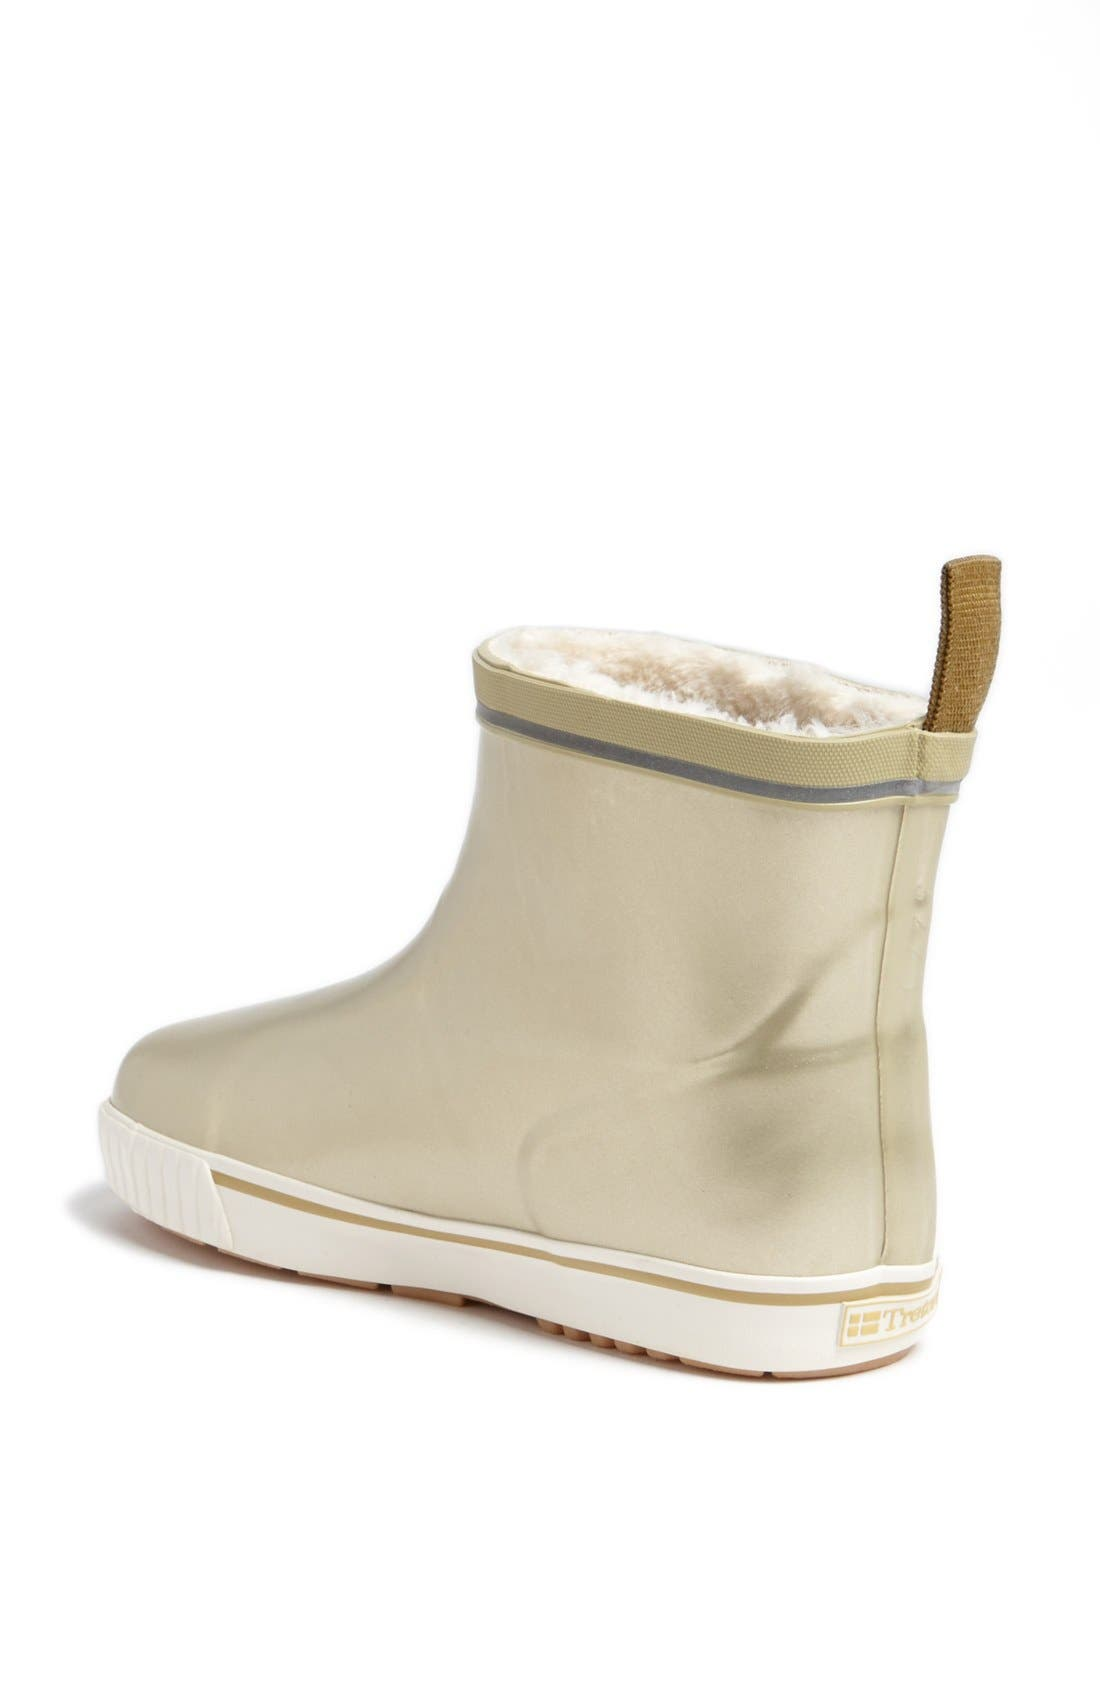 'Skerry Spritz Vinter' Waterproof Boot,                             Alternate thumbnail 2, color,                             Gold